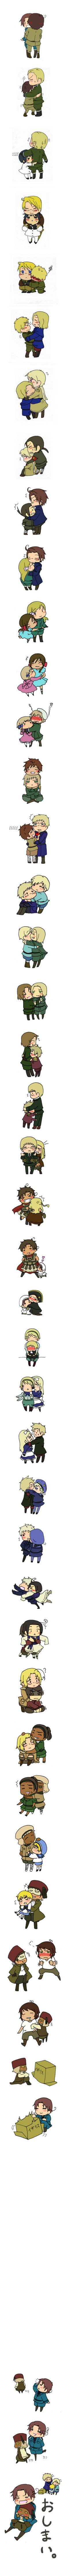 excuSE ME WHERE AM I << SHIT I THOUGHT I SAW PRUSSIA<<<No Belarus! Go away!